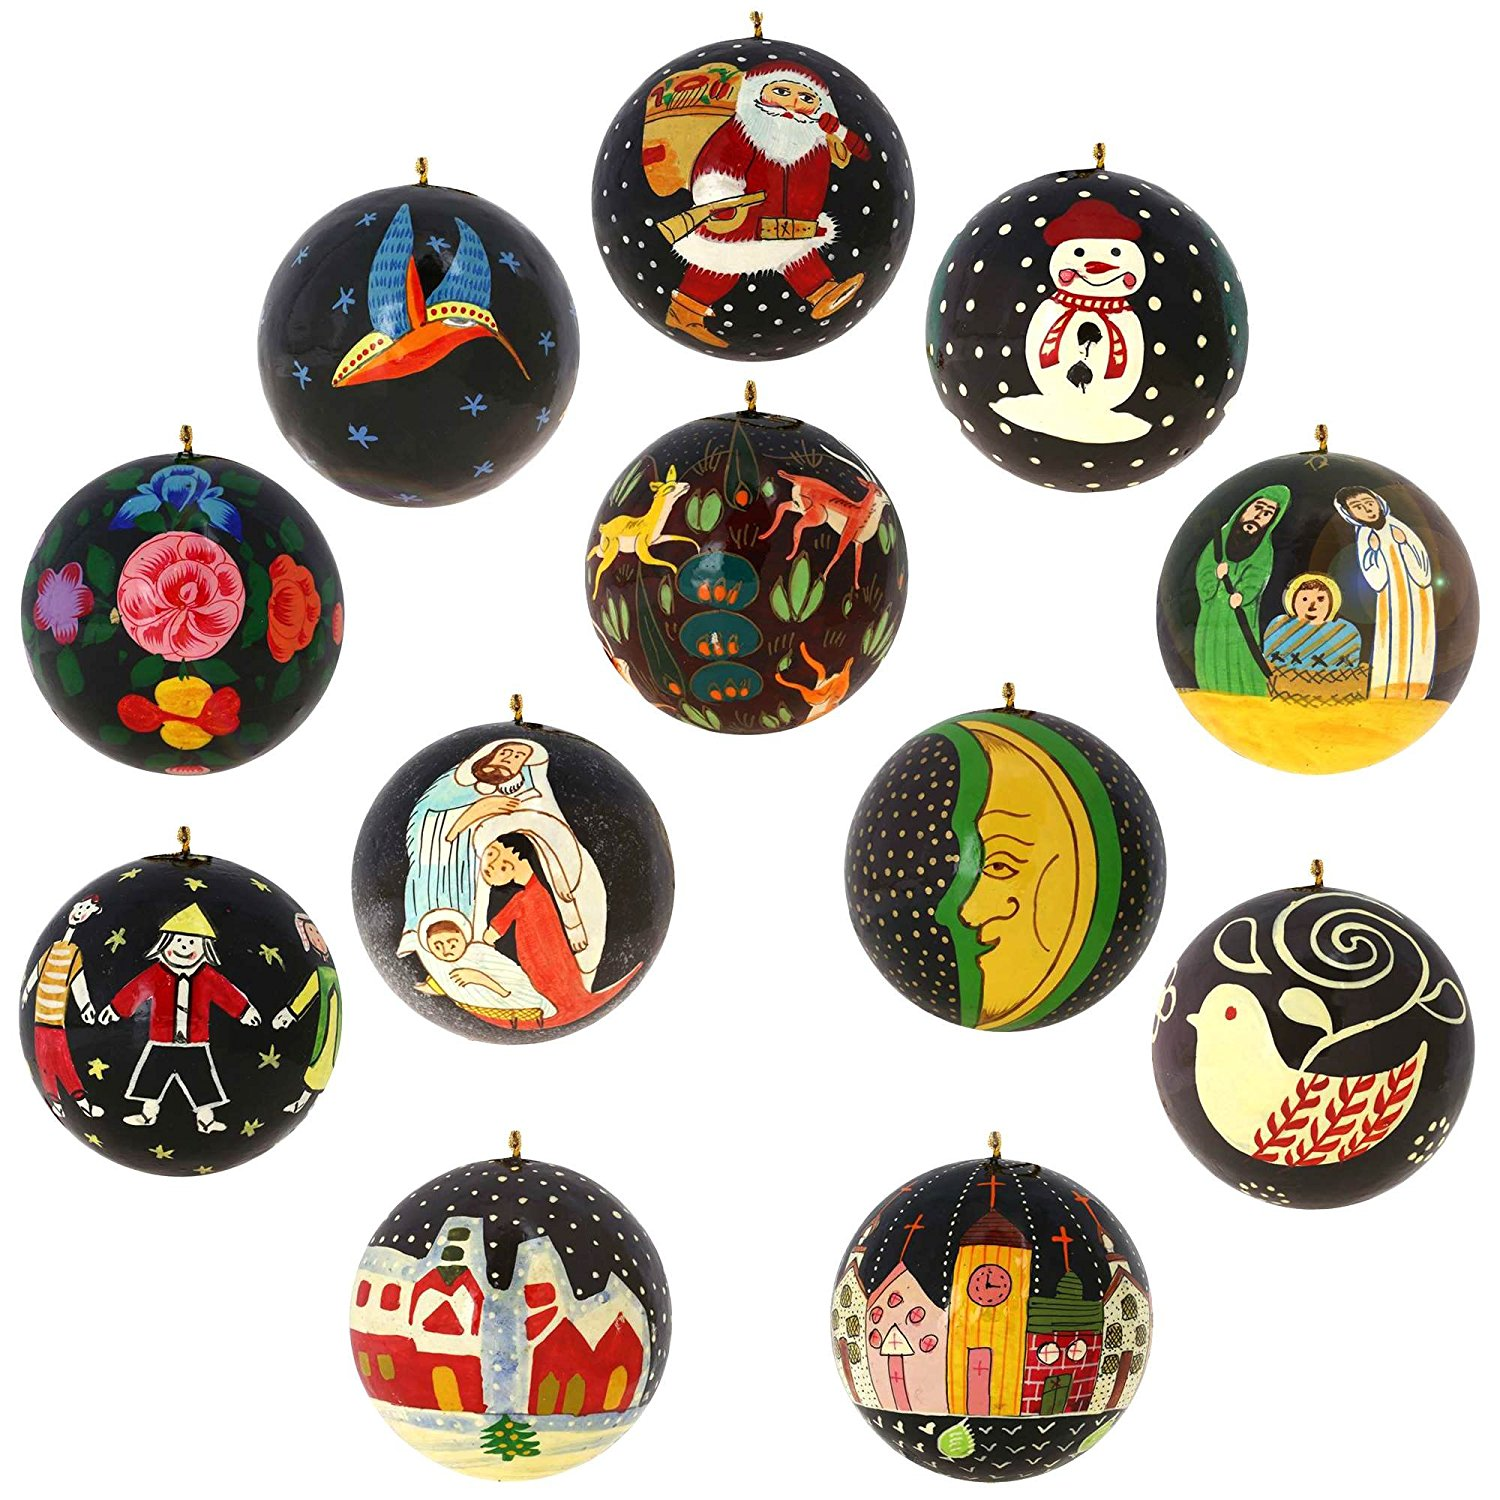 Buy Set of 12 Black Paper Mache Christmas Ornaments Handmade in ...